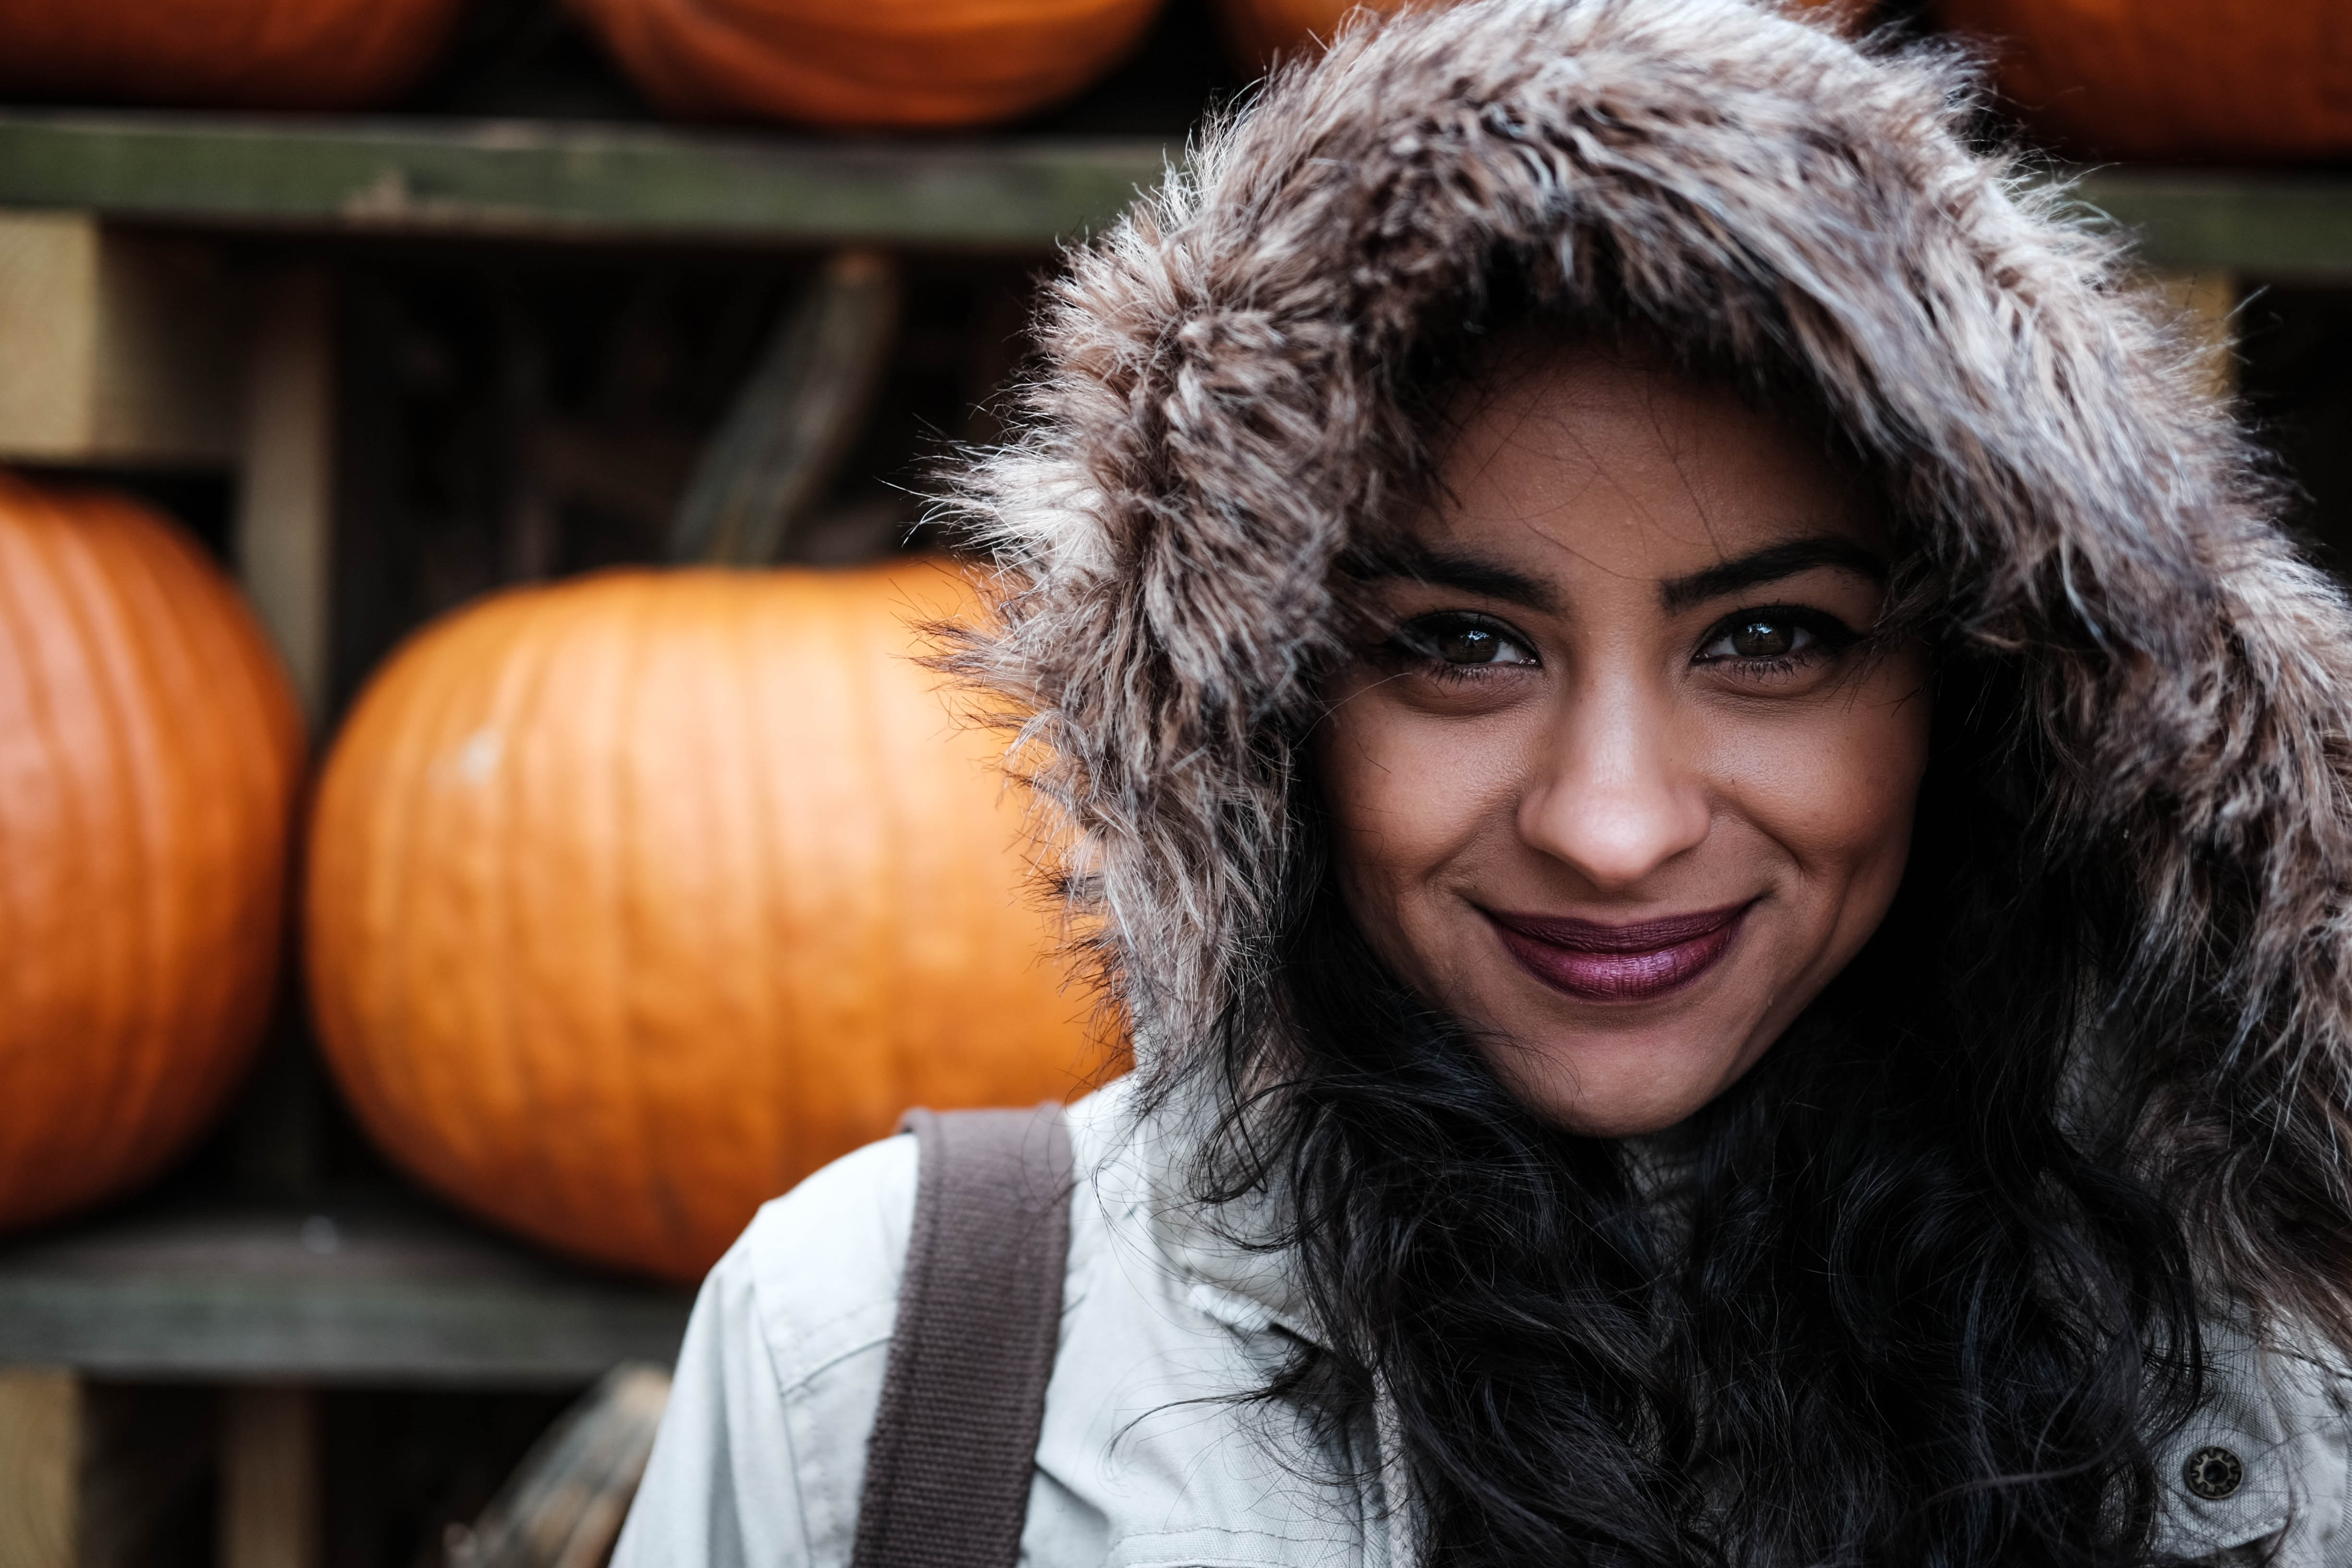 A woman wearing a fur hood and maroon lipstick smiles in front of shelves of pumpkins